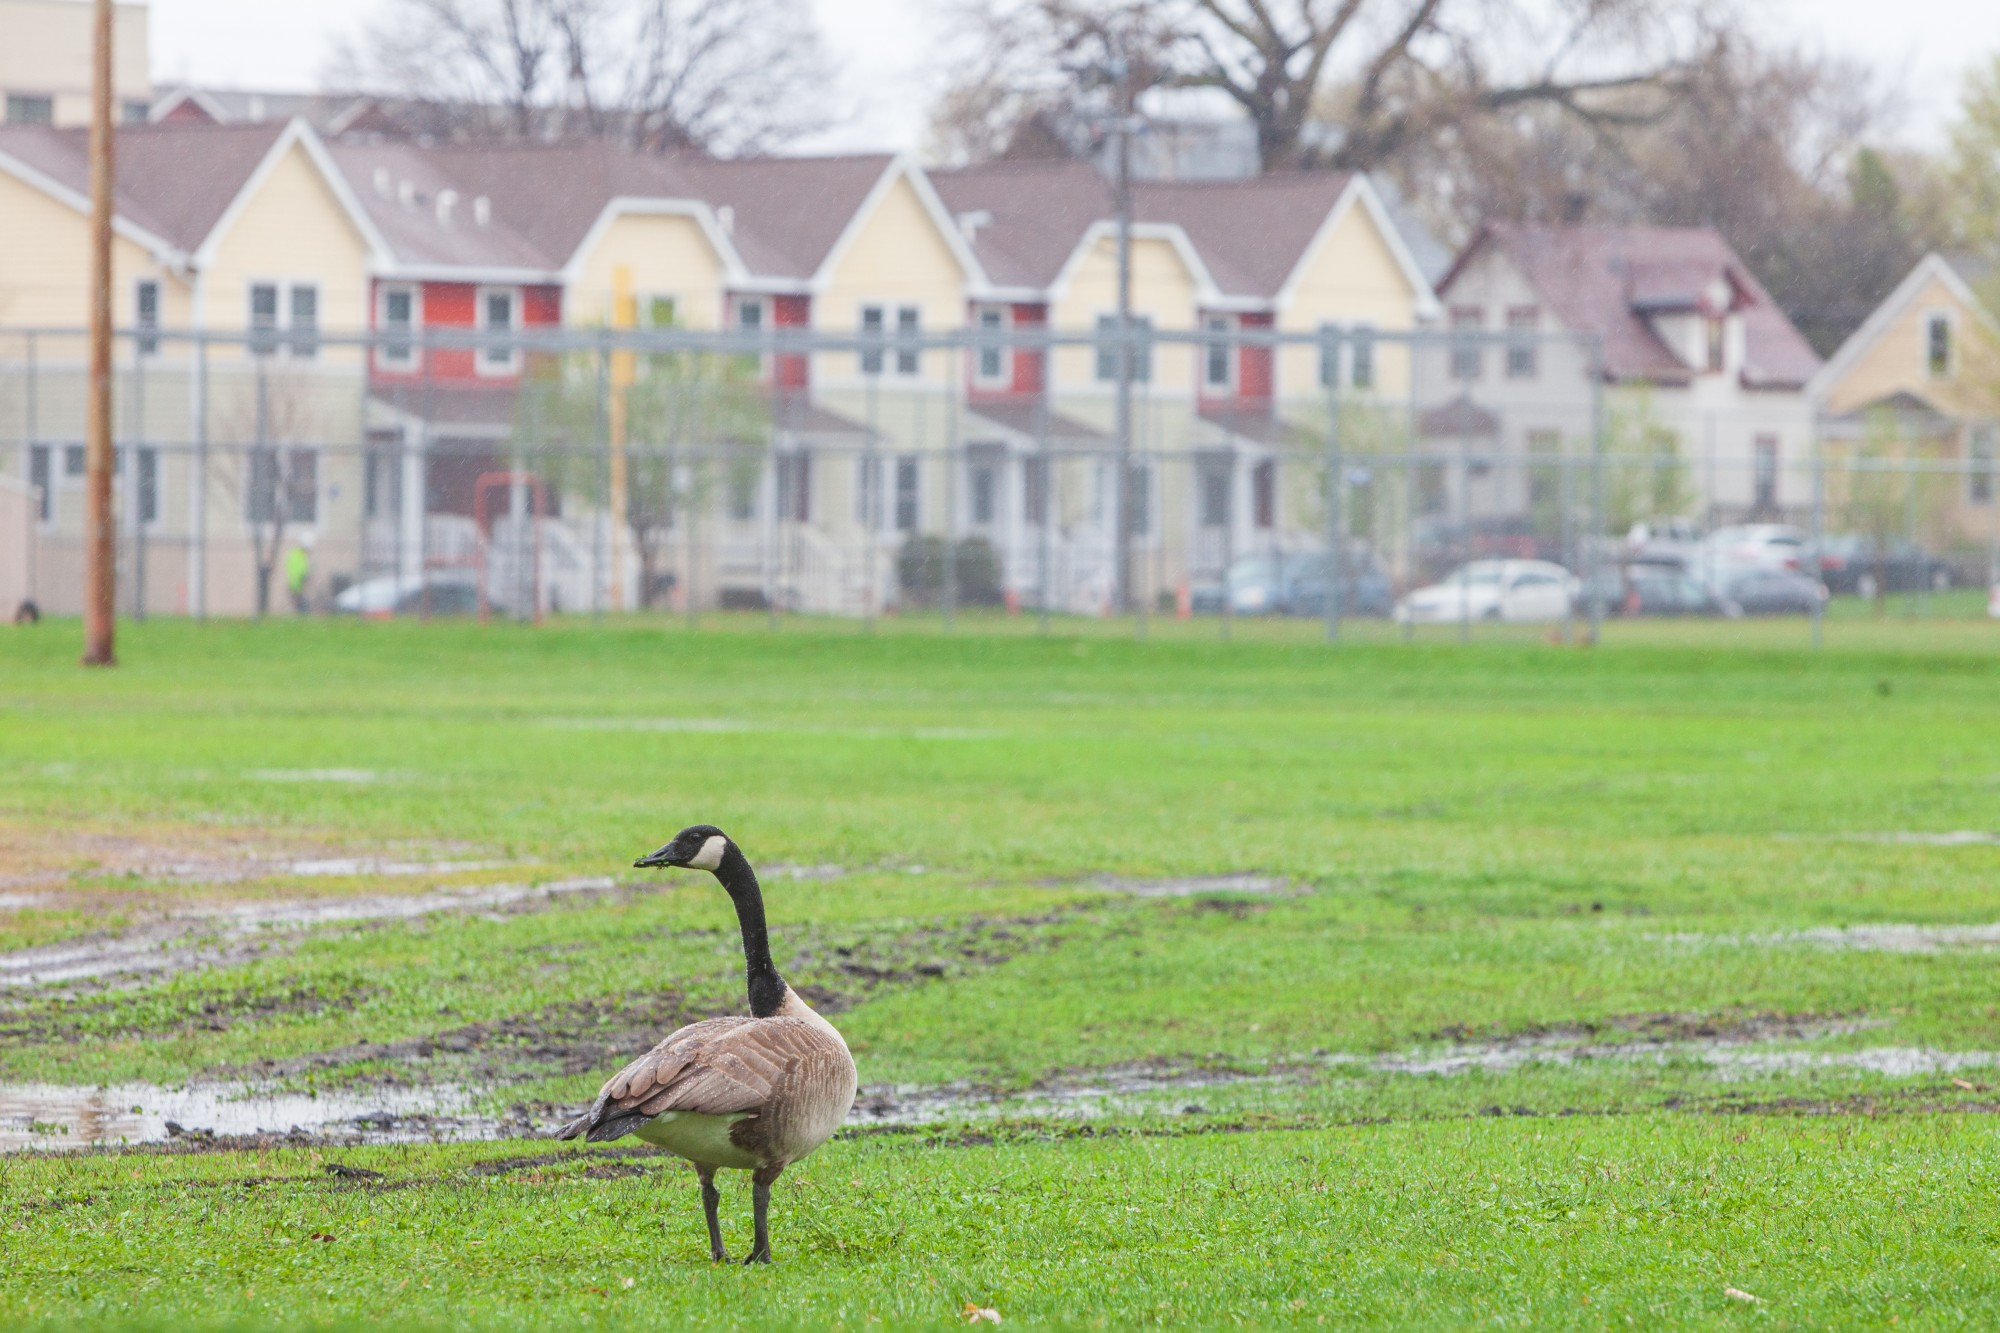 A lone goose wanders Van Cleve Park on Tuesday, April 28 2020.